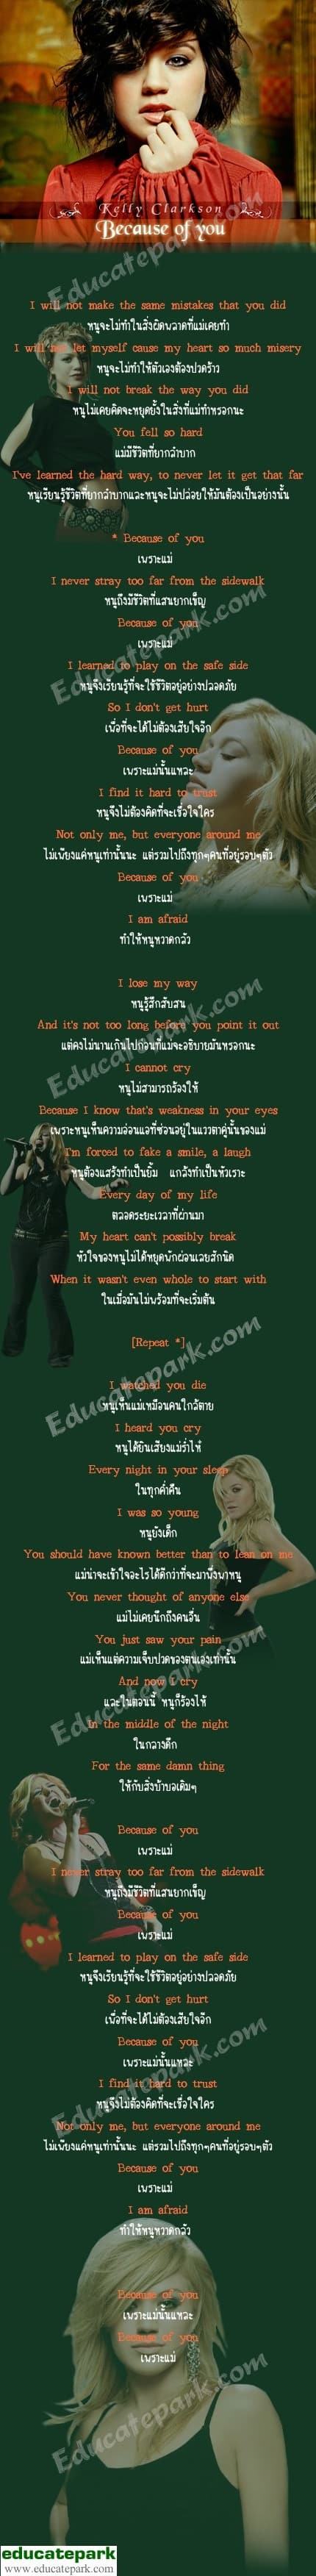 แปลเพลง Because Of You - Kelly Clarkson